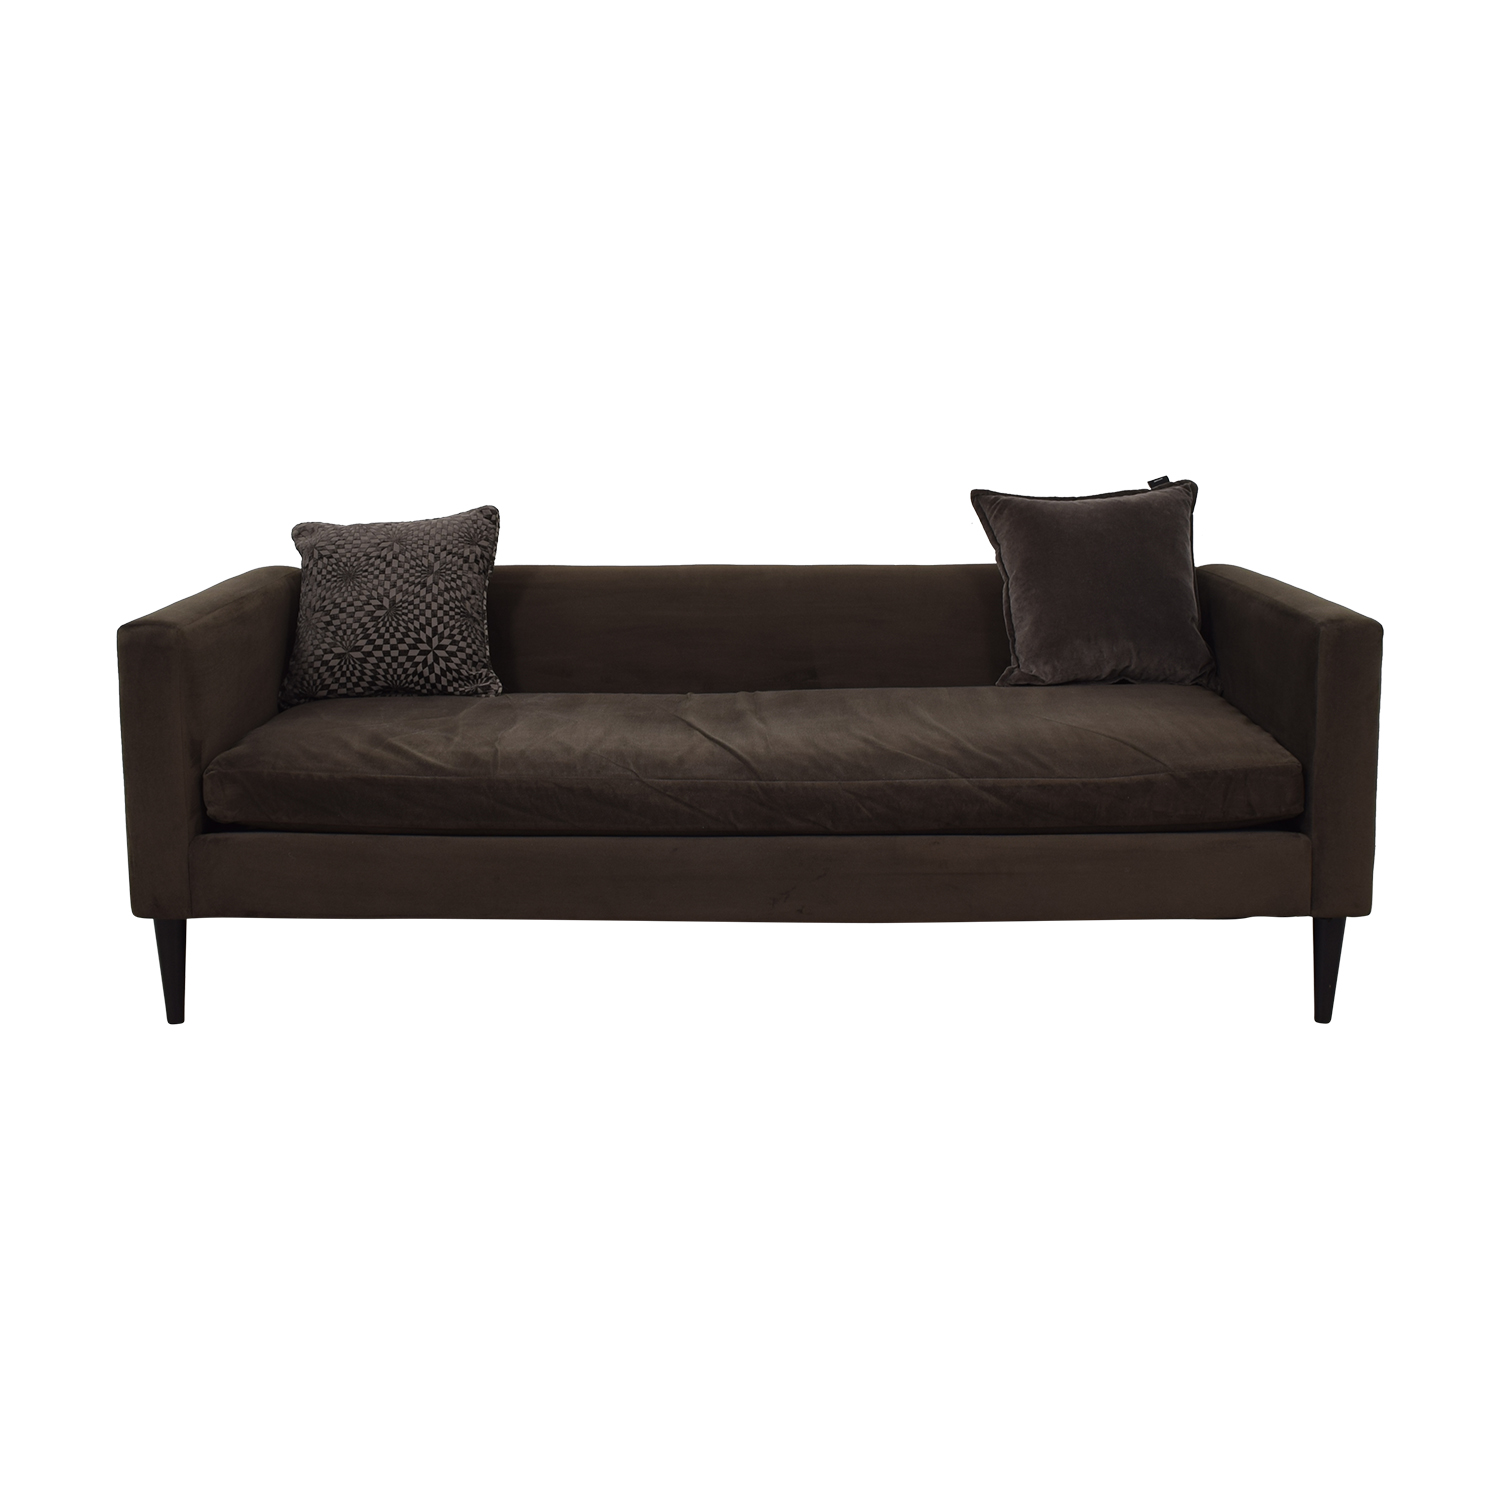 CB2 CB2 Brown Sofa with Two Throw Pillows on sale